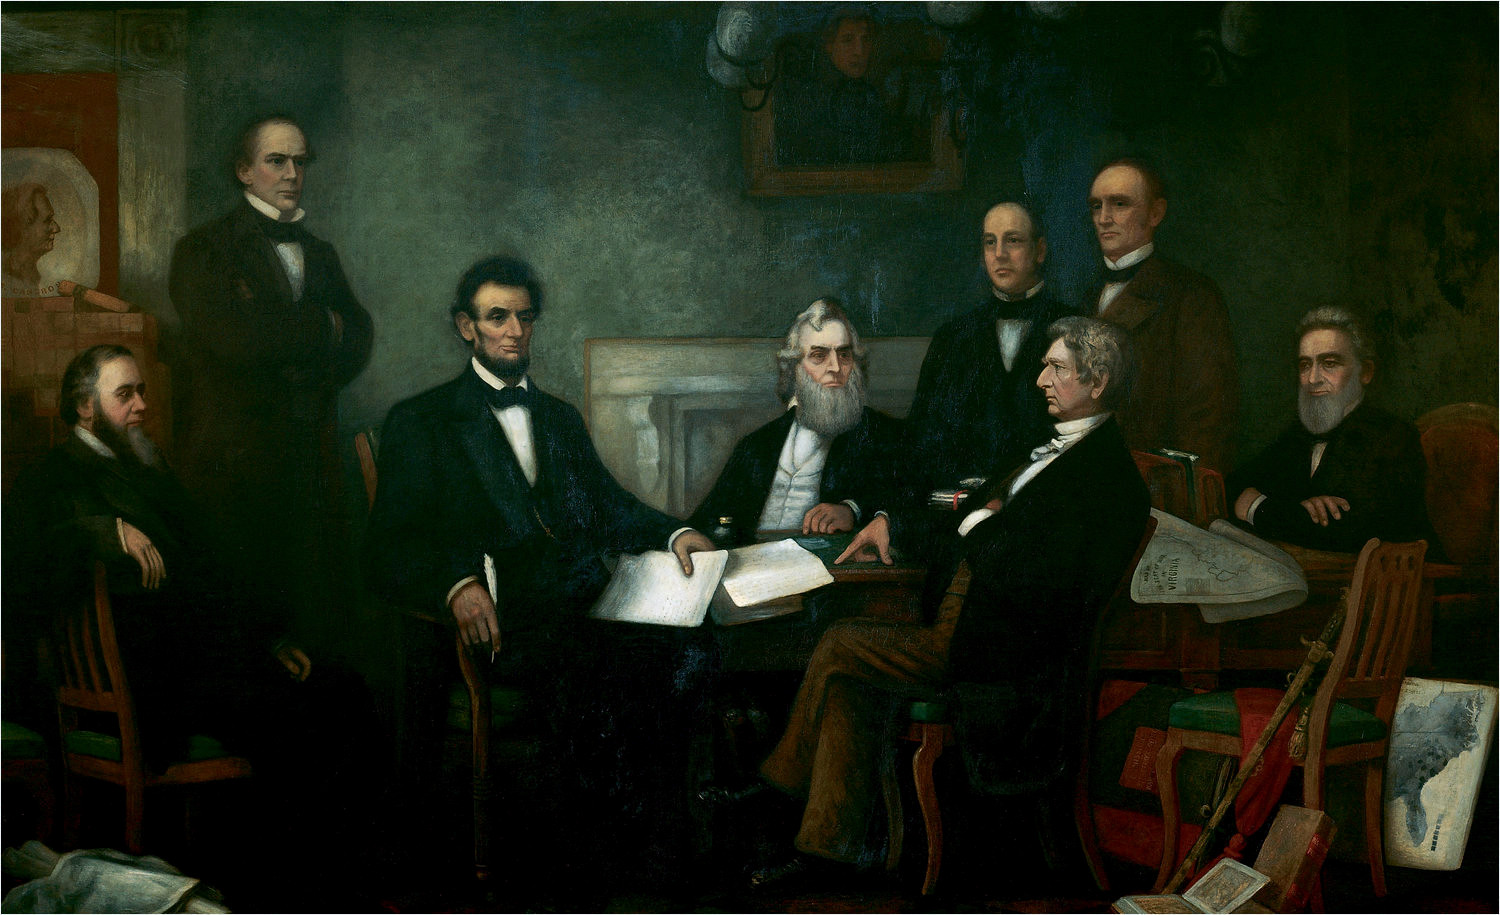 """""""First reading of the Emancipation Proclamation of President Lincoln,"""" by Francis Bicknell Carpenter [Public domain], via Wikimedia Commons Shown from left to right are: Edwin M. Stanton, secretary of war (seated); Salmon P. Chase, secretary of the treasury (standing); Abraham Lincoln; Gideon Welles, secretary of the navy (seated); Caleb Blood Smith, secretary of the interior (standing); William H. Seward, secretary of state (seated); Montgomery Blair, postmaster general (standing); Edward Bates, attorney general (seated)."""